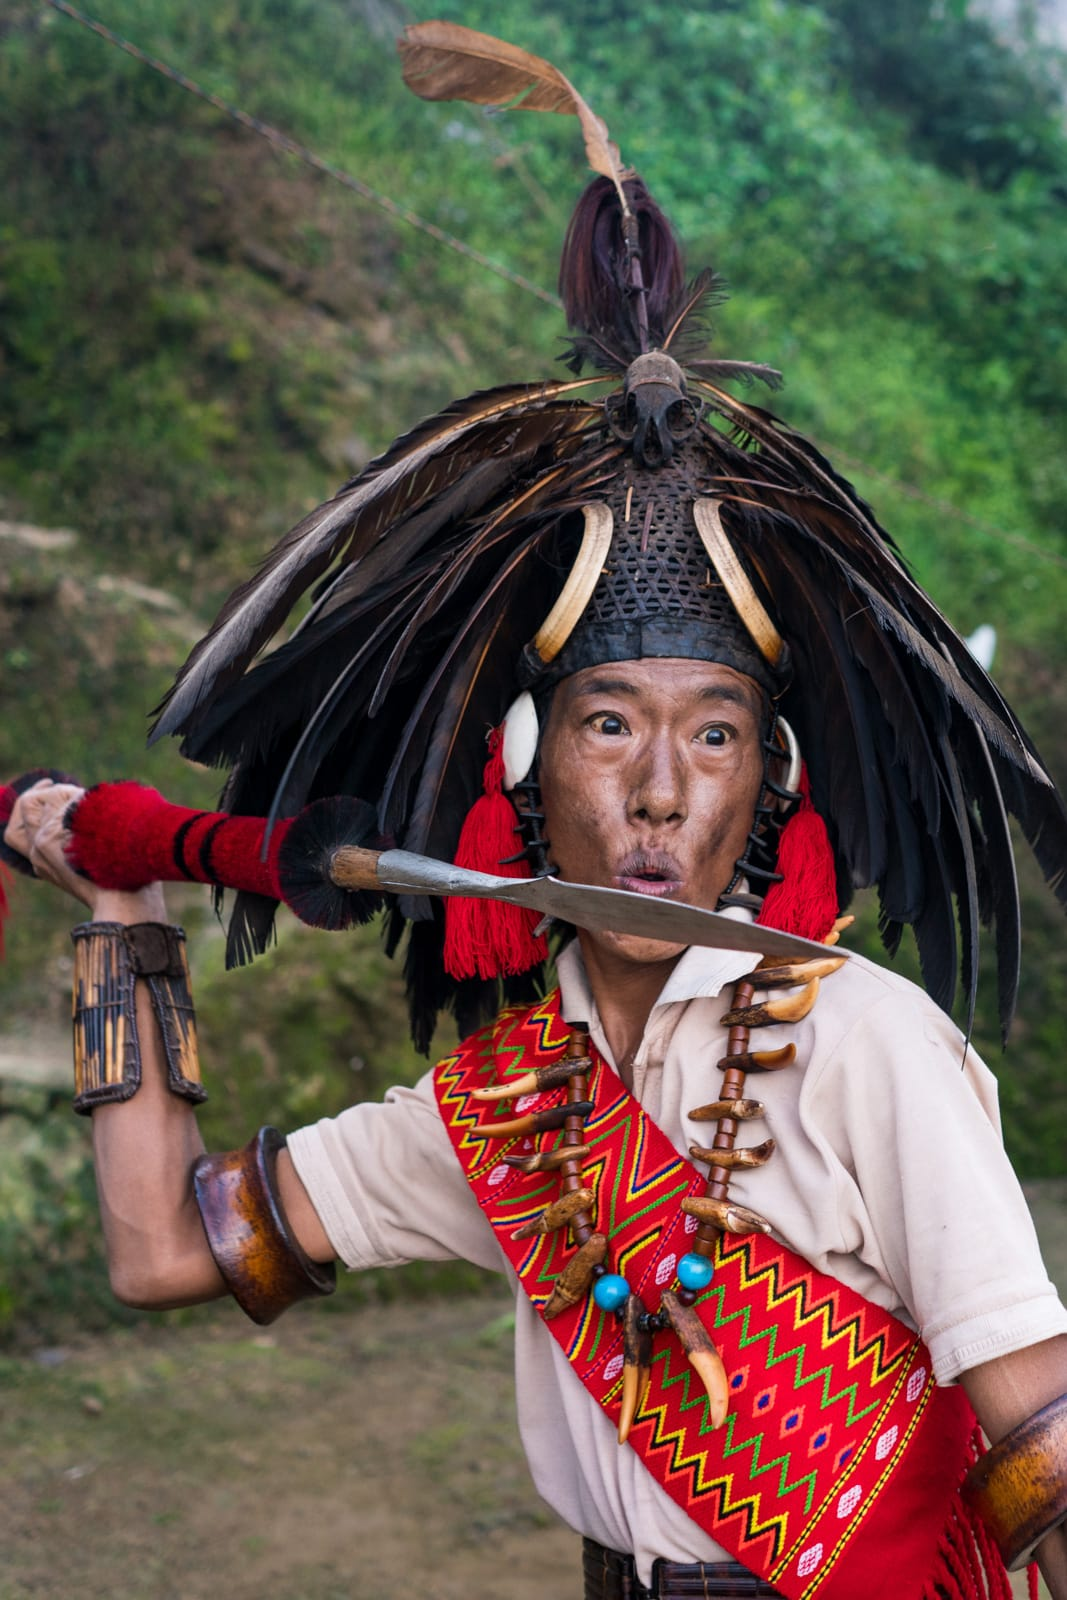 A local man from Longwa village, Nagaland, India hefting a traditional spear.